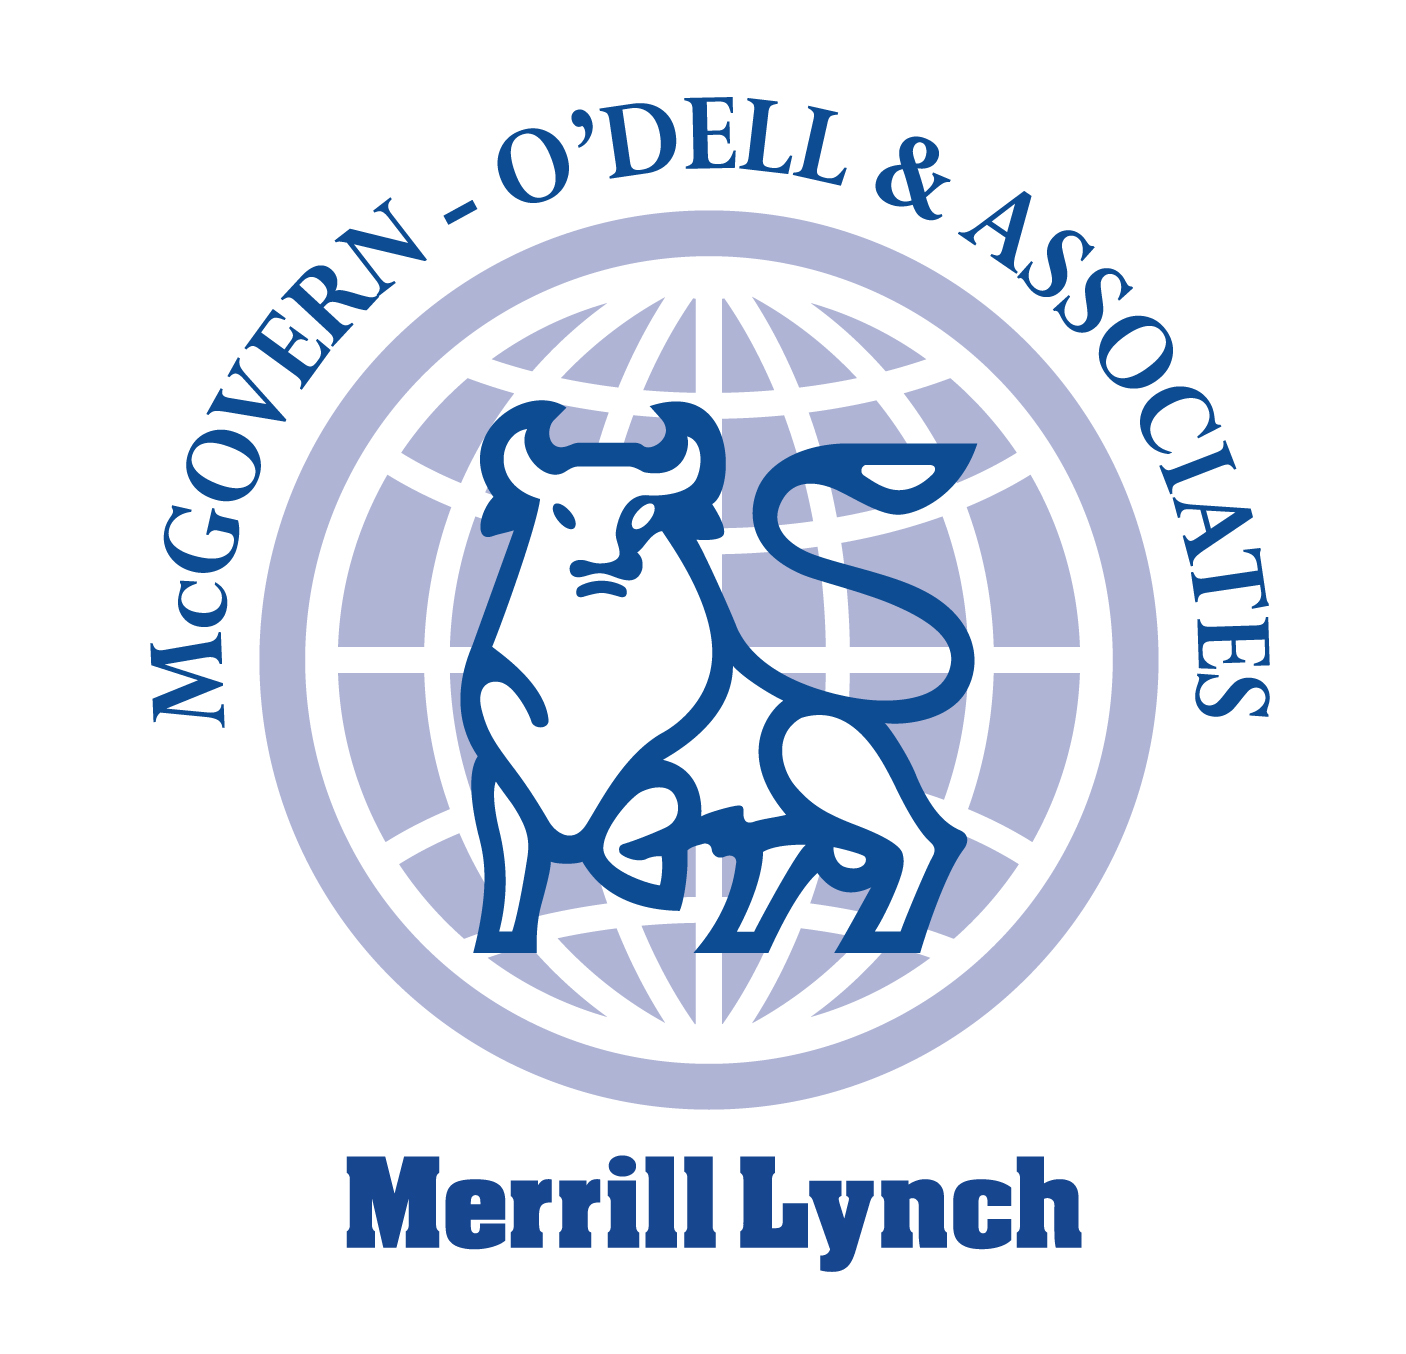 McGovern - O'Dell & Associates, Merrill Lynch